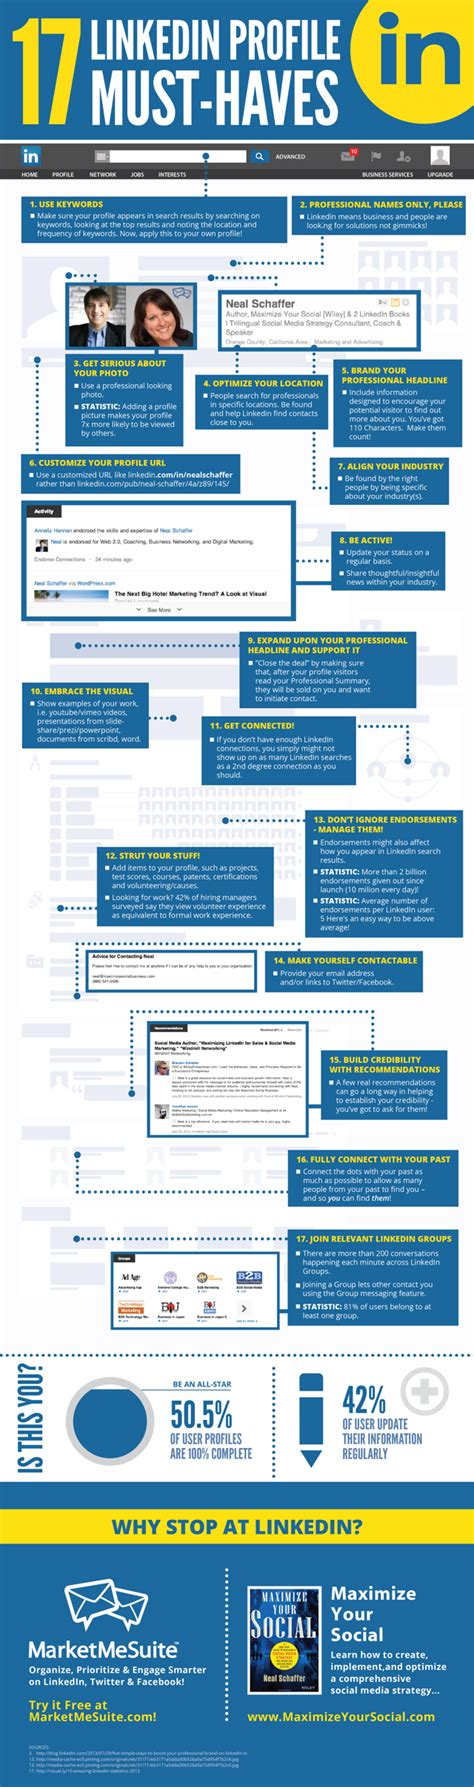 17 linkedin profile must haves infographic